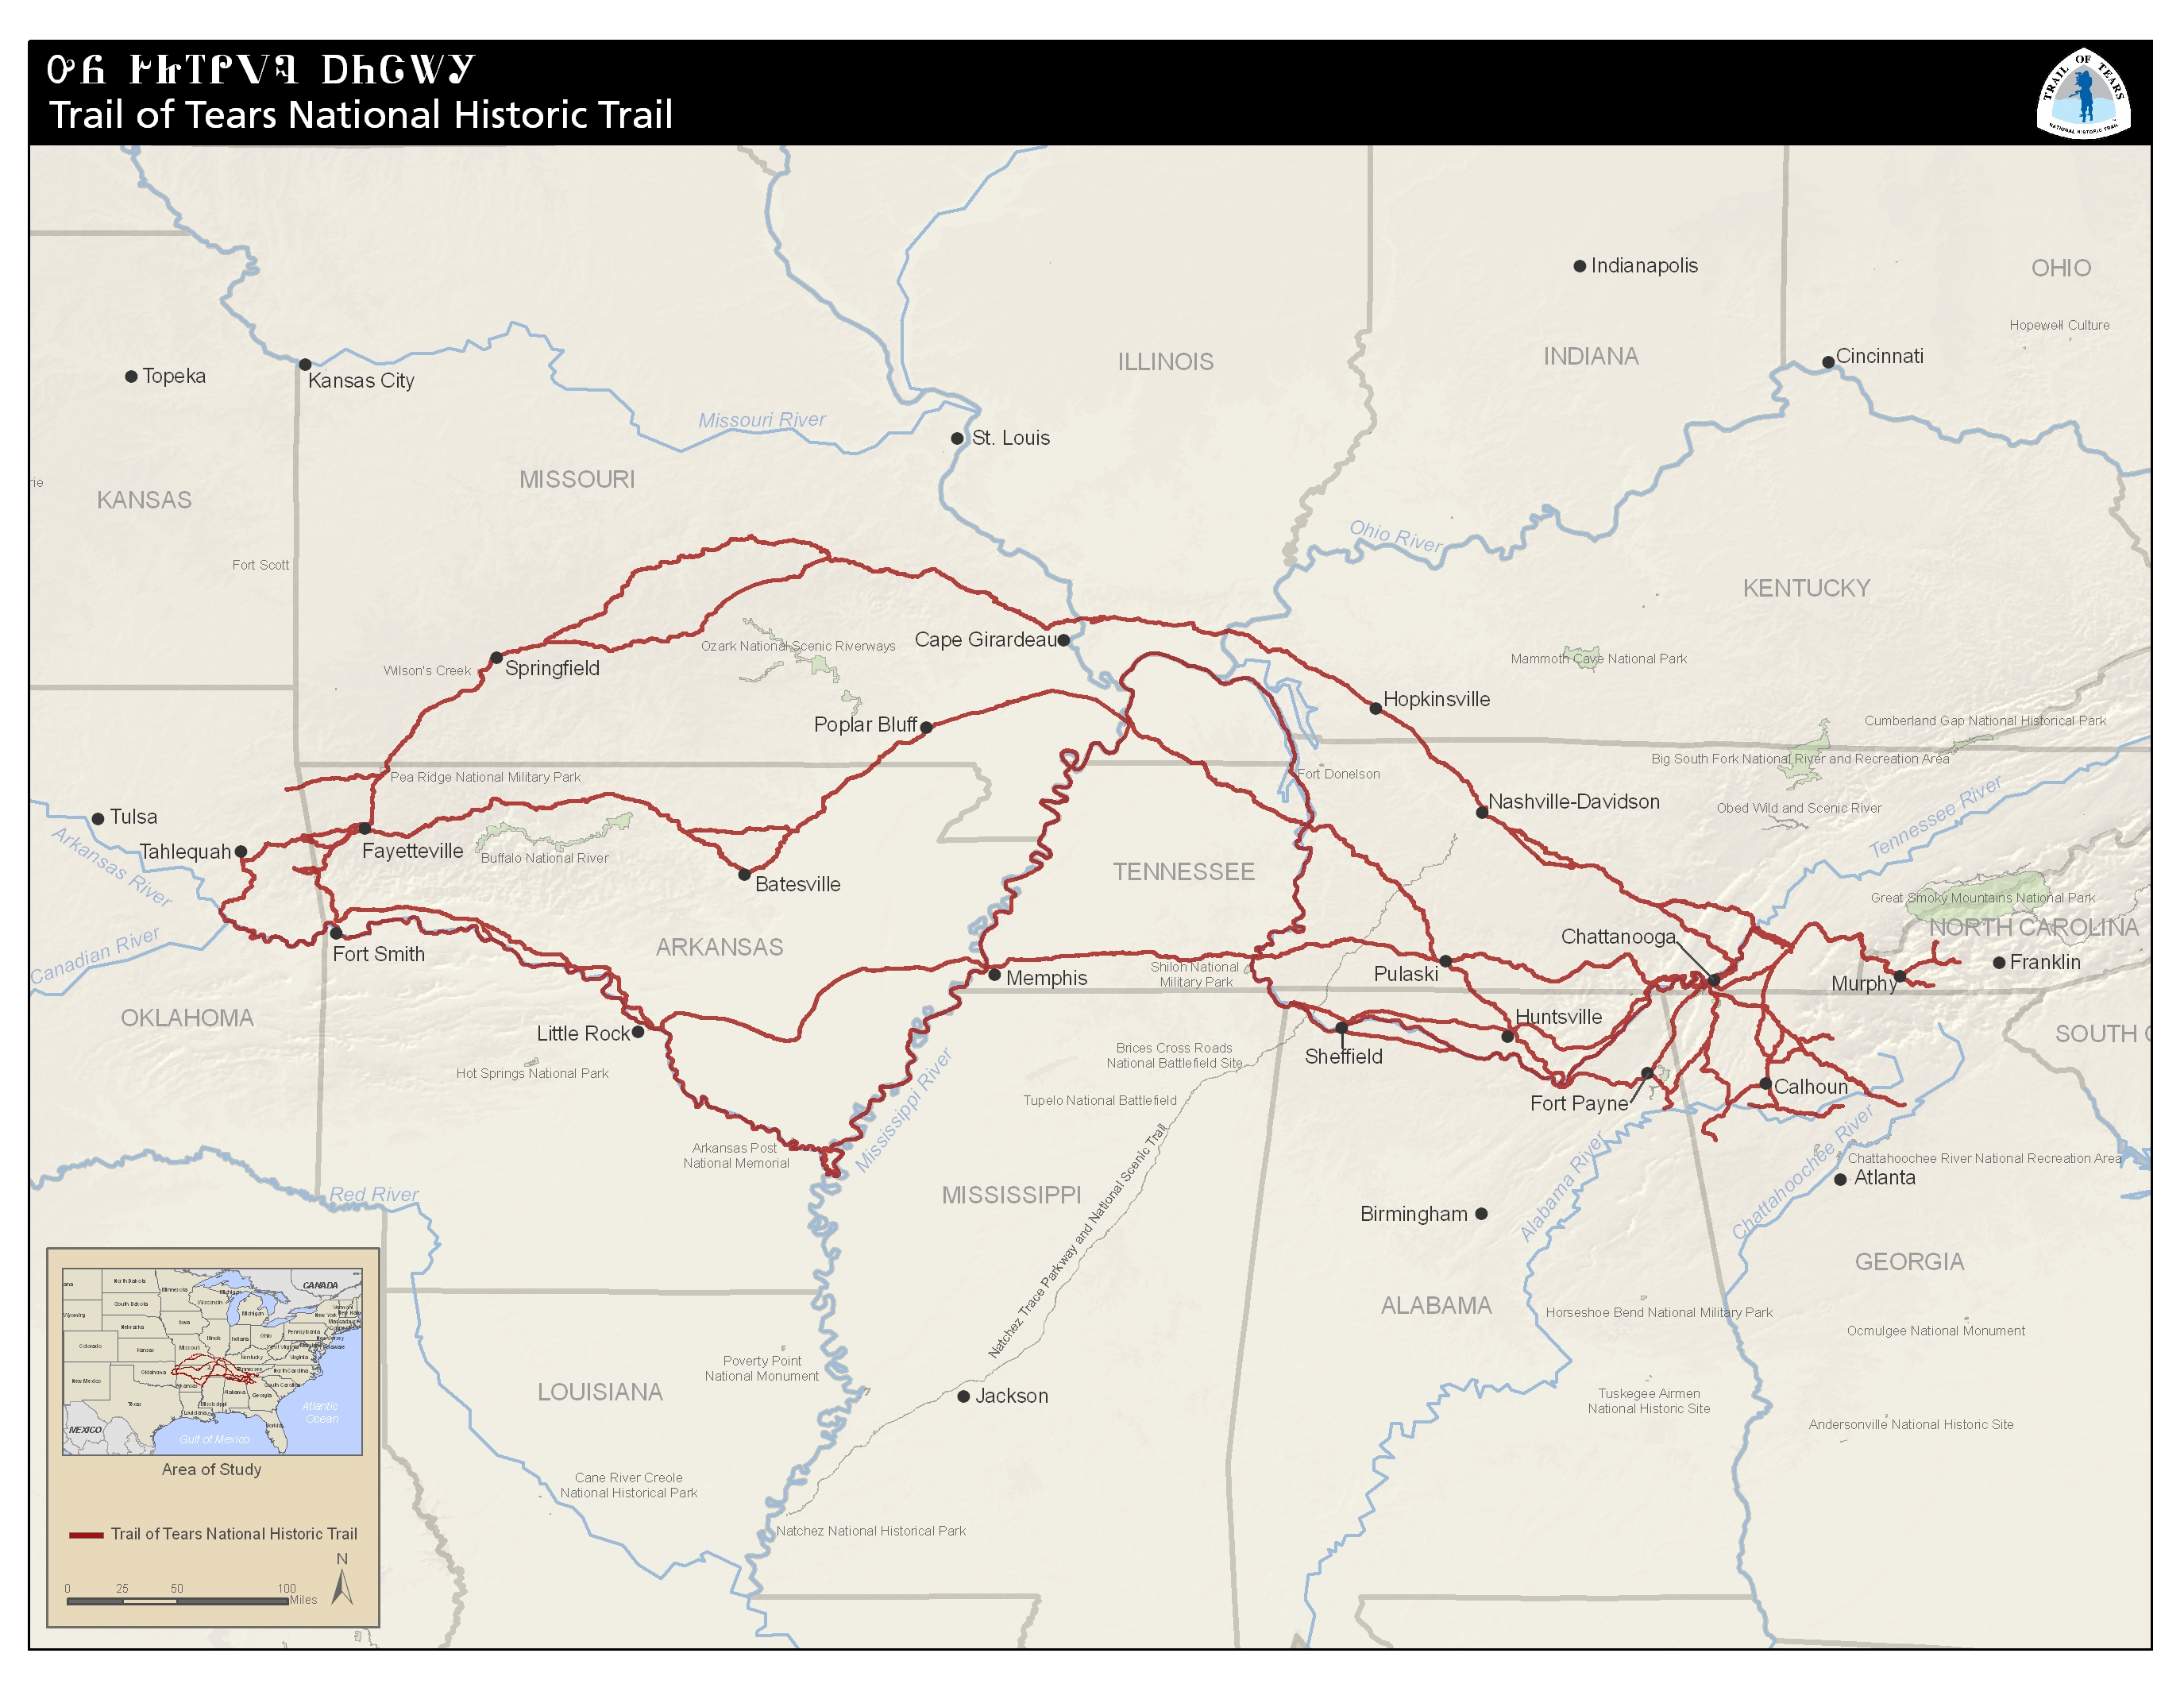 Maps Trail Of Tears National Historic Trail US National Park - Map of us national park historical sites